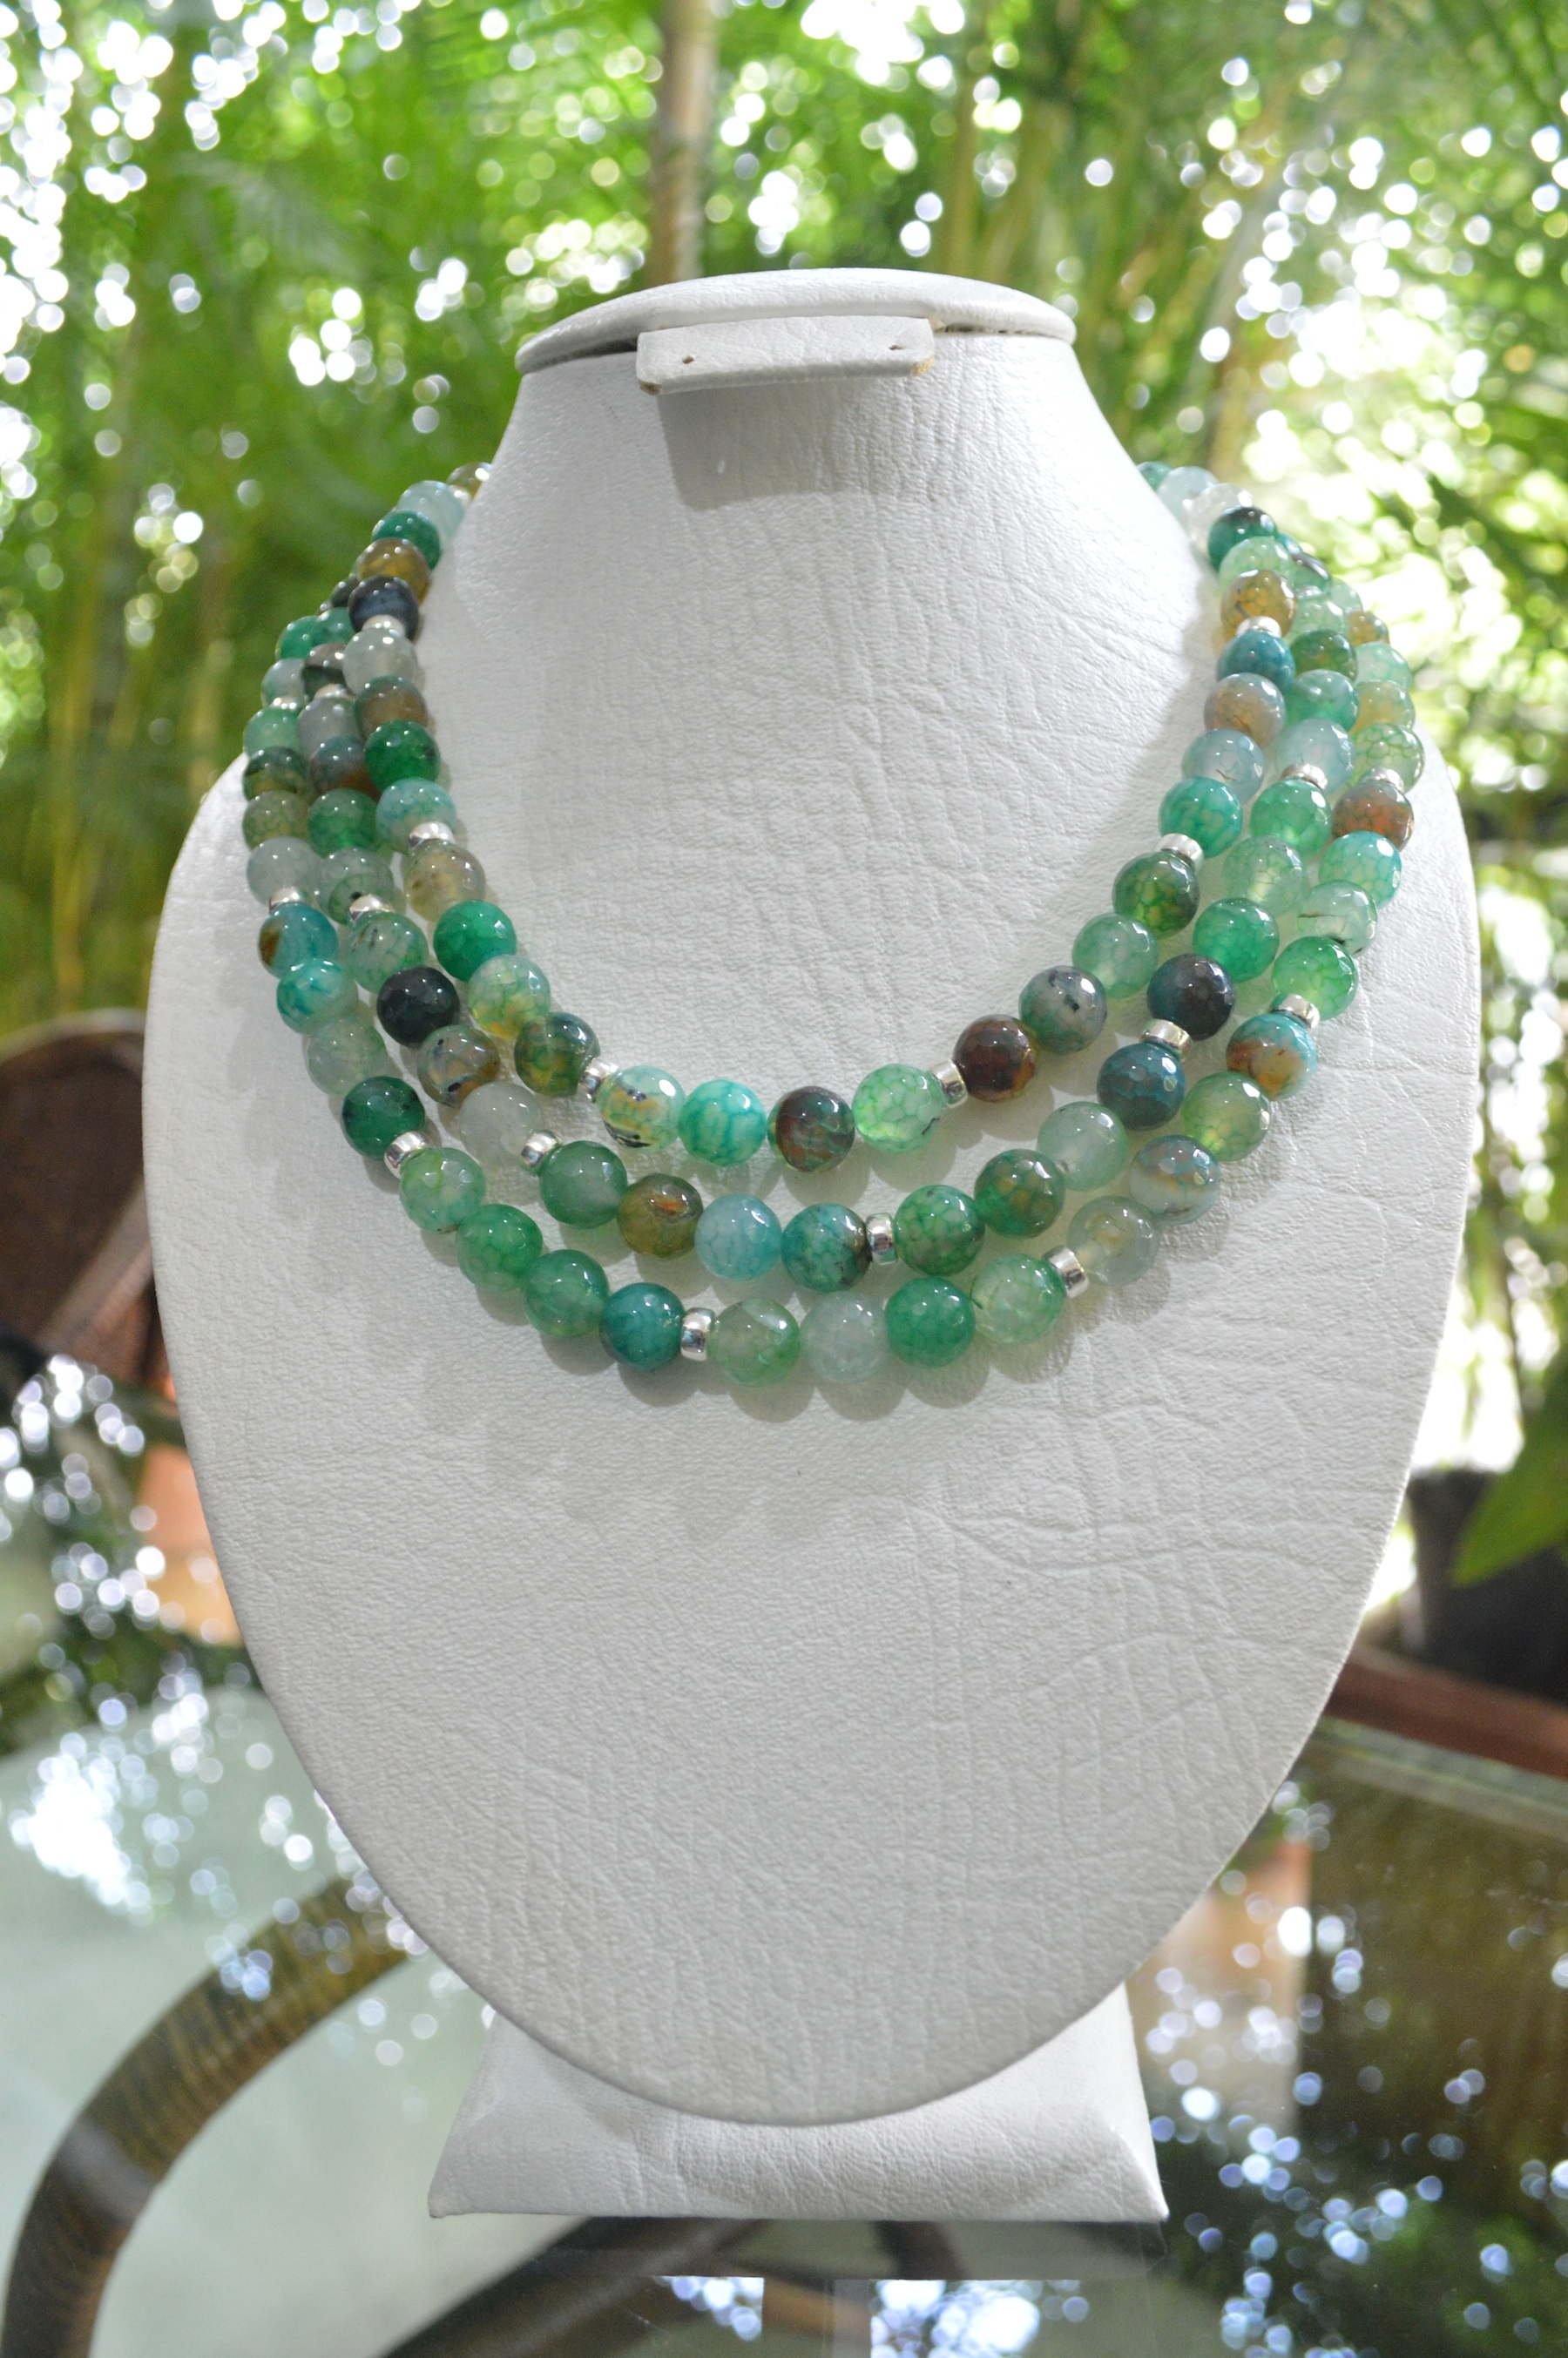 Three strand green agate necklace with sterling silver